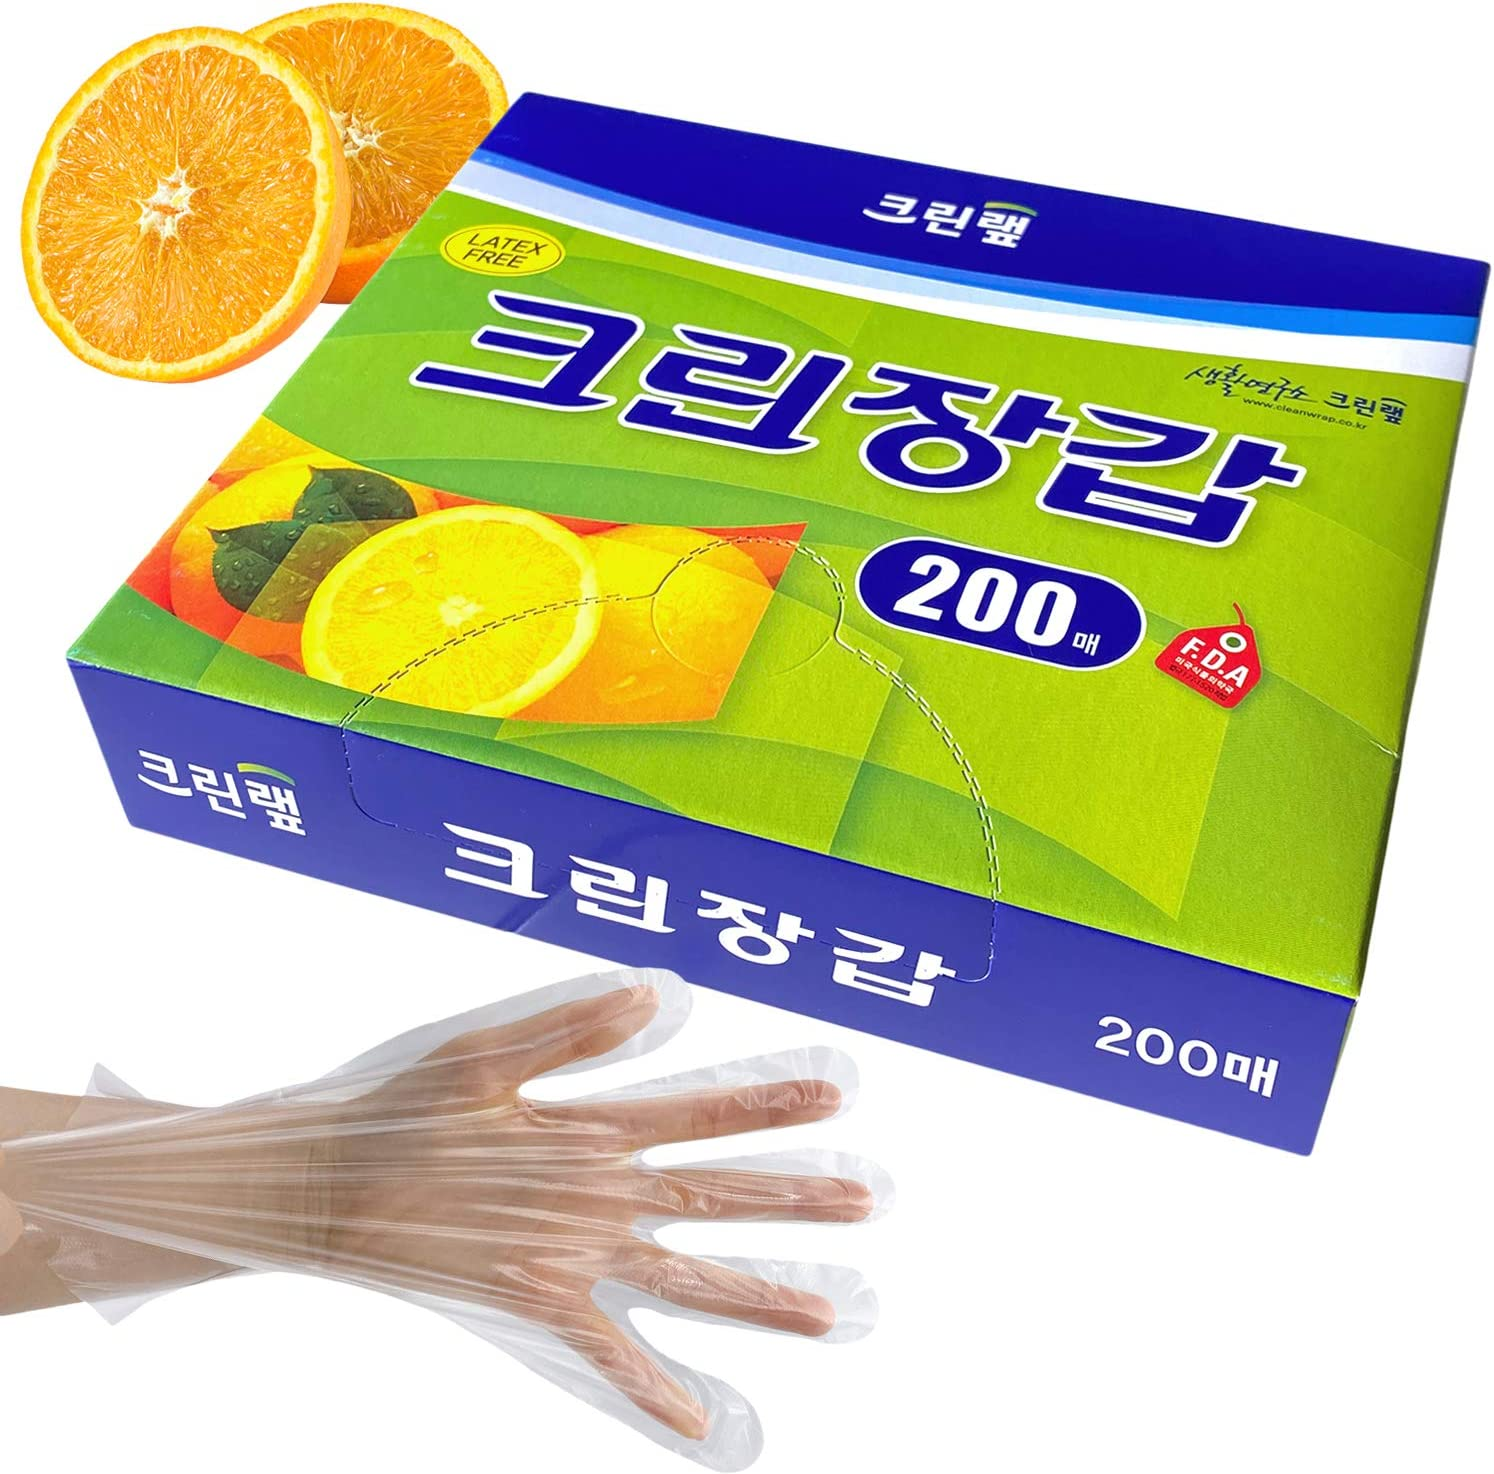 Cleanwrap Clear Disposable Plastic Gloves Textured, 200 Pieces - Latex Free, Powder Free, BPA Free - Safety for Food Handling, Kitchen Essential Supplies, Cooking, Cleaning, Multi Purpose